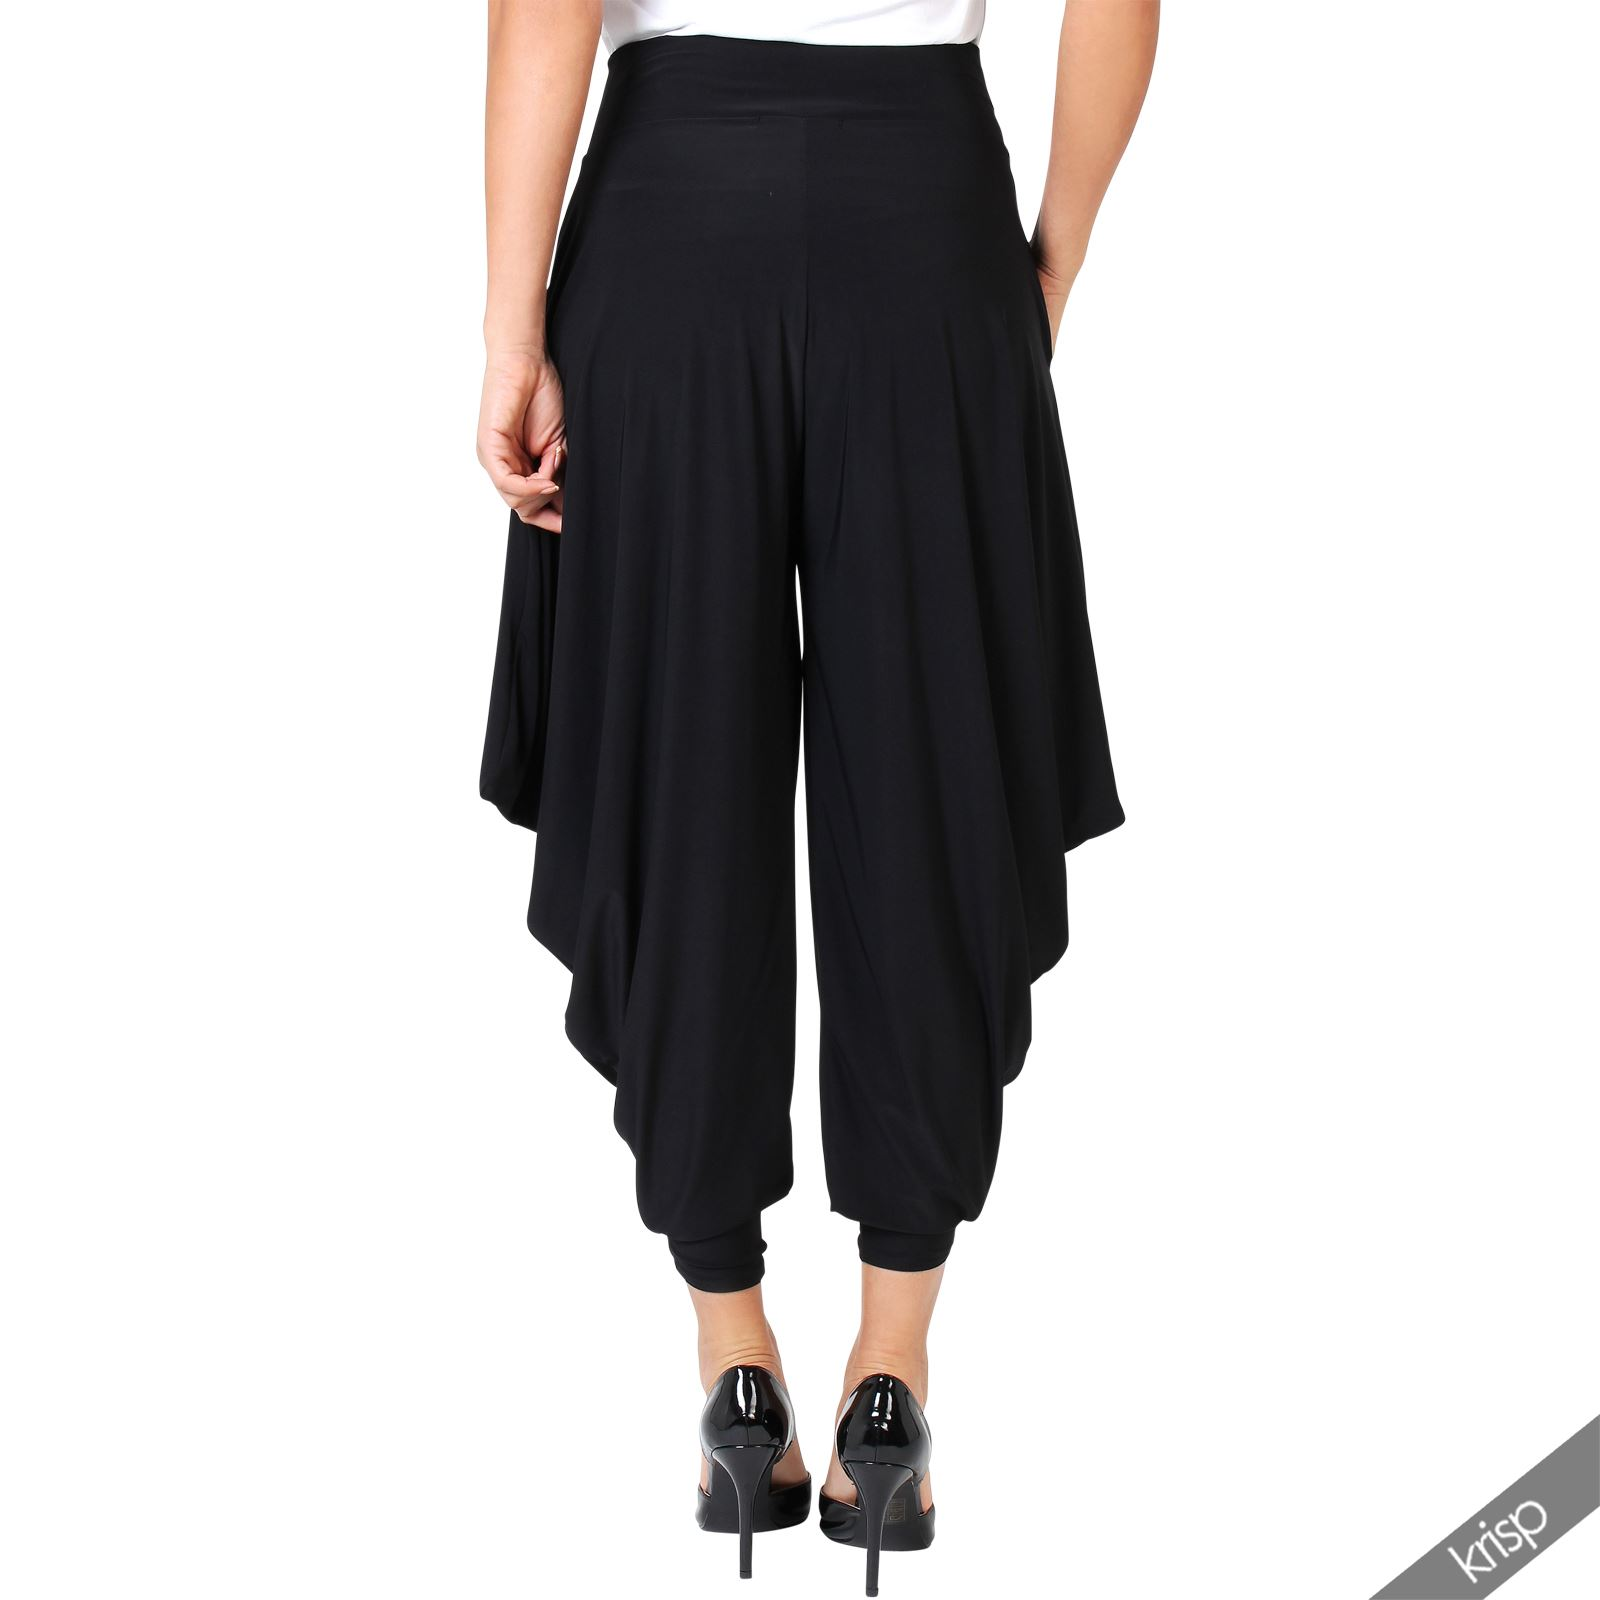 New Black Harem Pants Women Stretch High Waisted Flared Trousers With Pockets USA